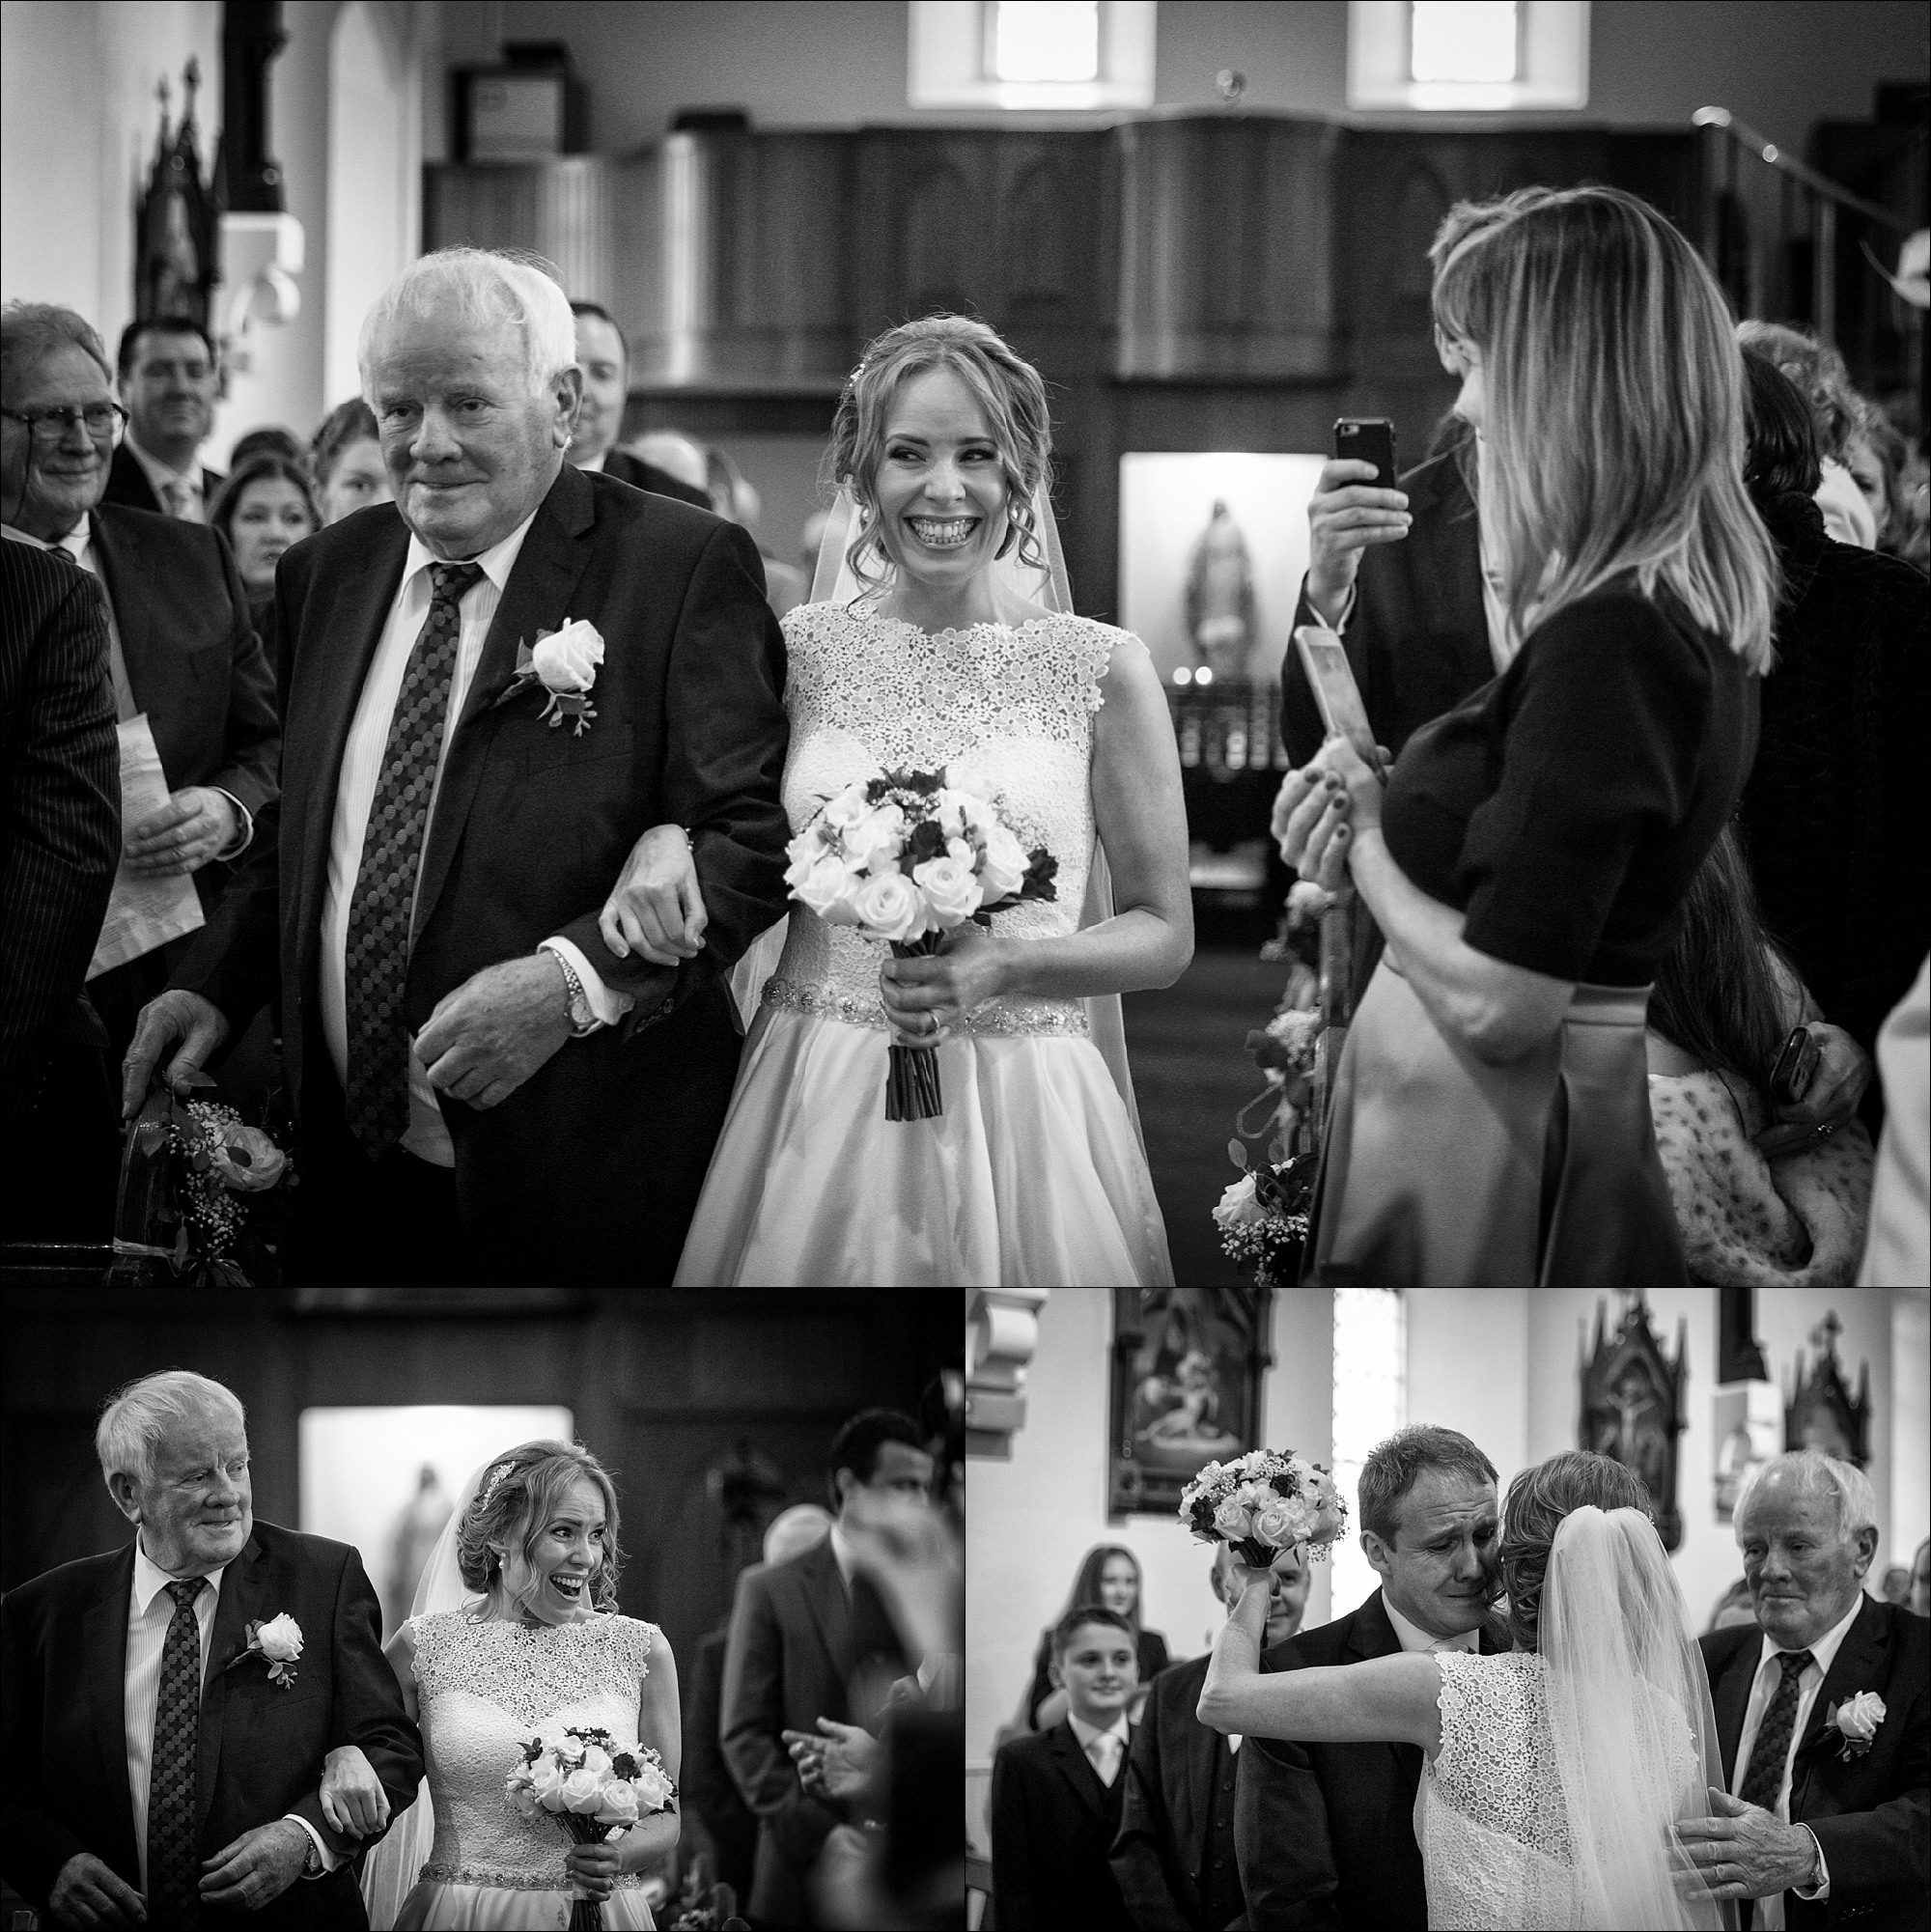 dublin wedding photographer david duignan photography tankardstown weddings slane rathfeigh church ireland 0017